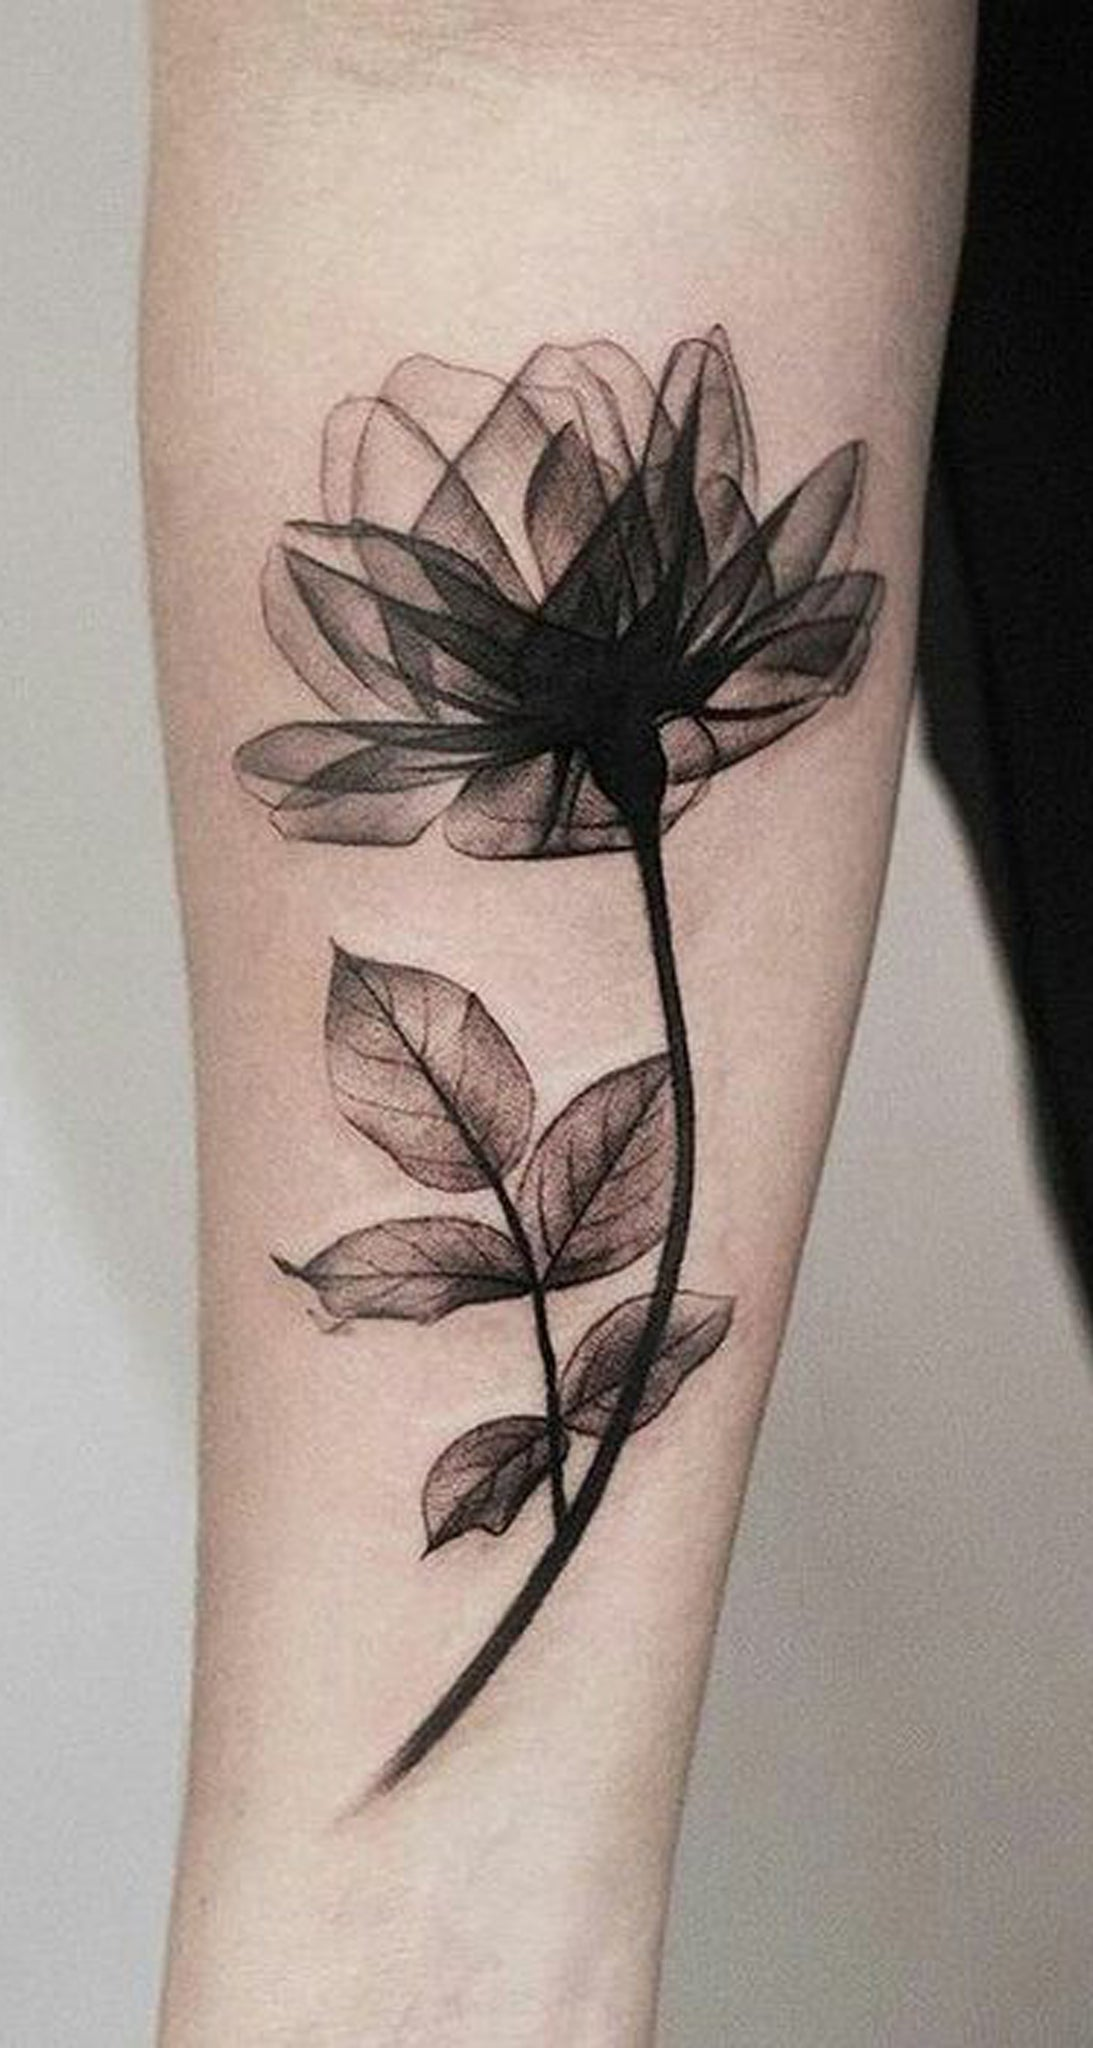 Flower Tattoo Designs For Women Unique: 100+ Of Most Beautiful Floral Tattoos Ideas